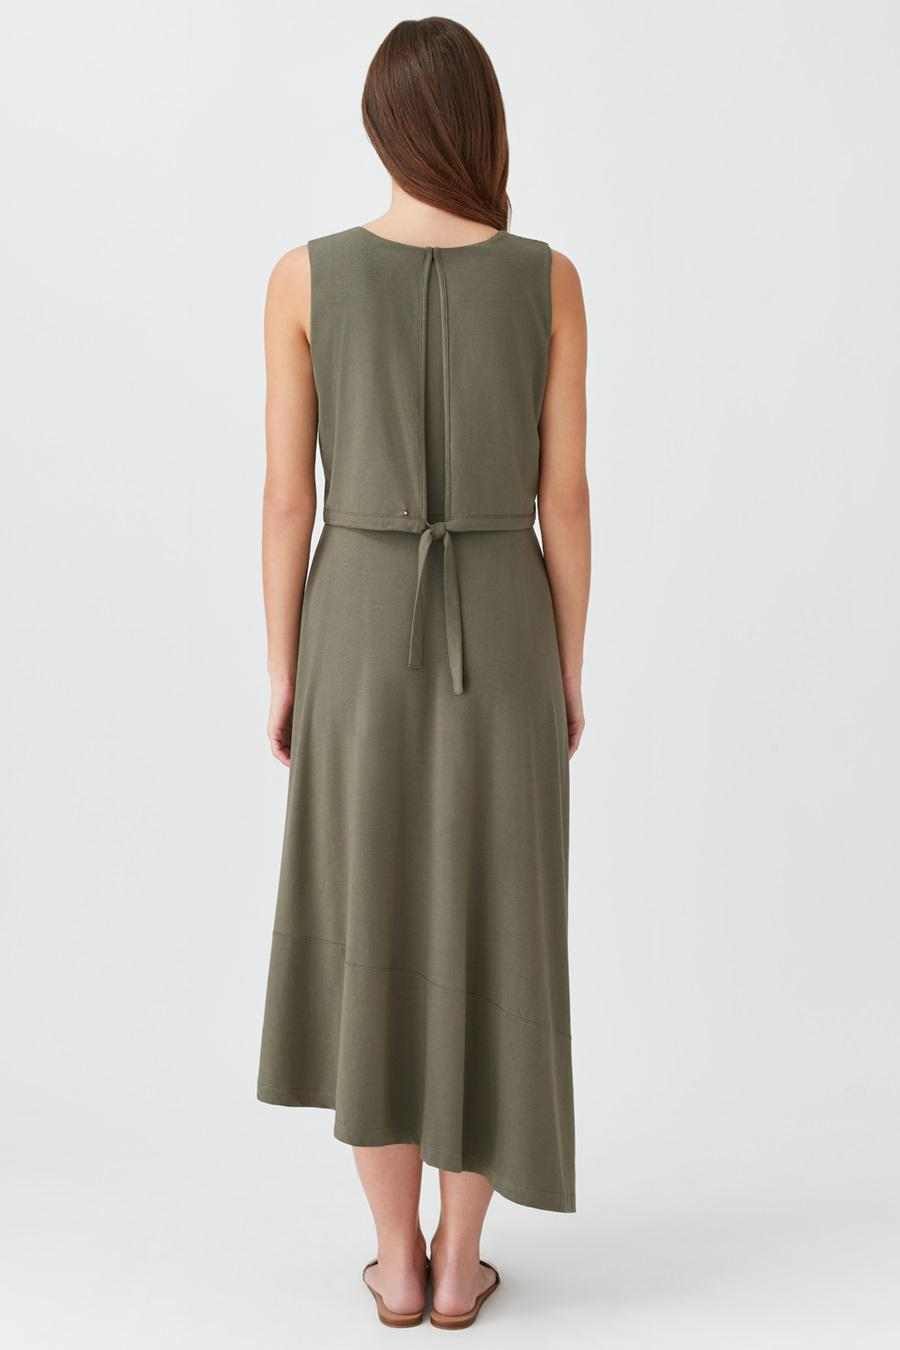 Women's Asymmetrical Overlay Dress in Olive | Size: Small | Organic Pima Cotton by Cuyana 2